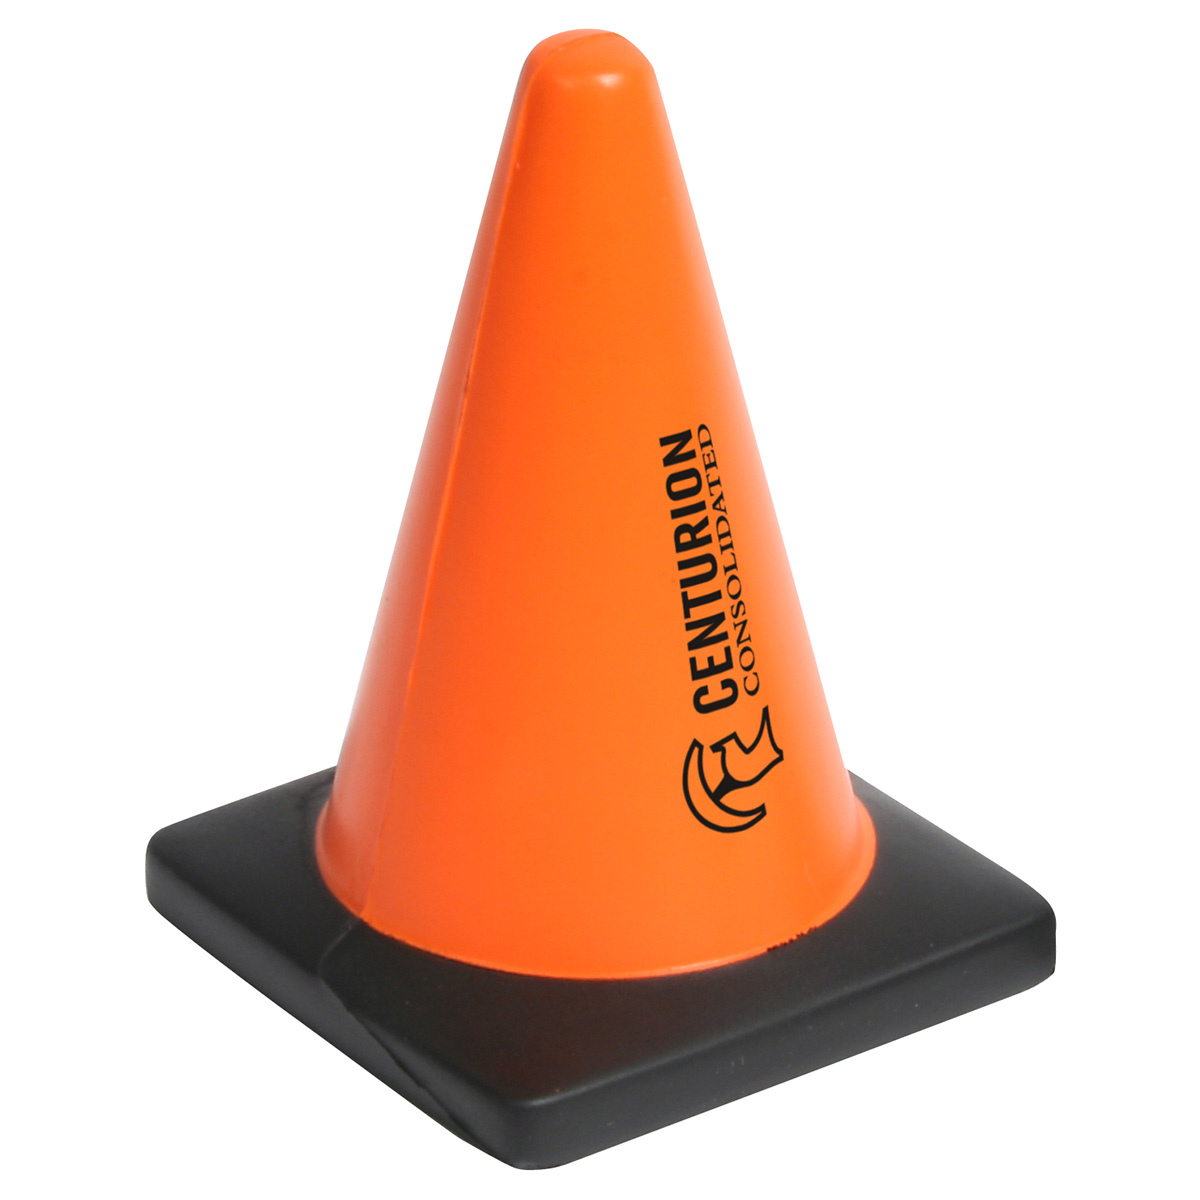 Construction Cone Stress Reliever, LCN-CC04 - 1 Colour Imprint